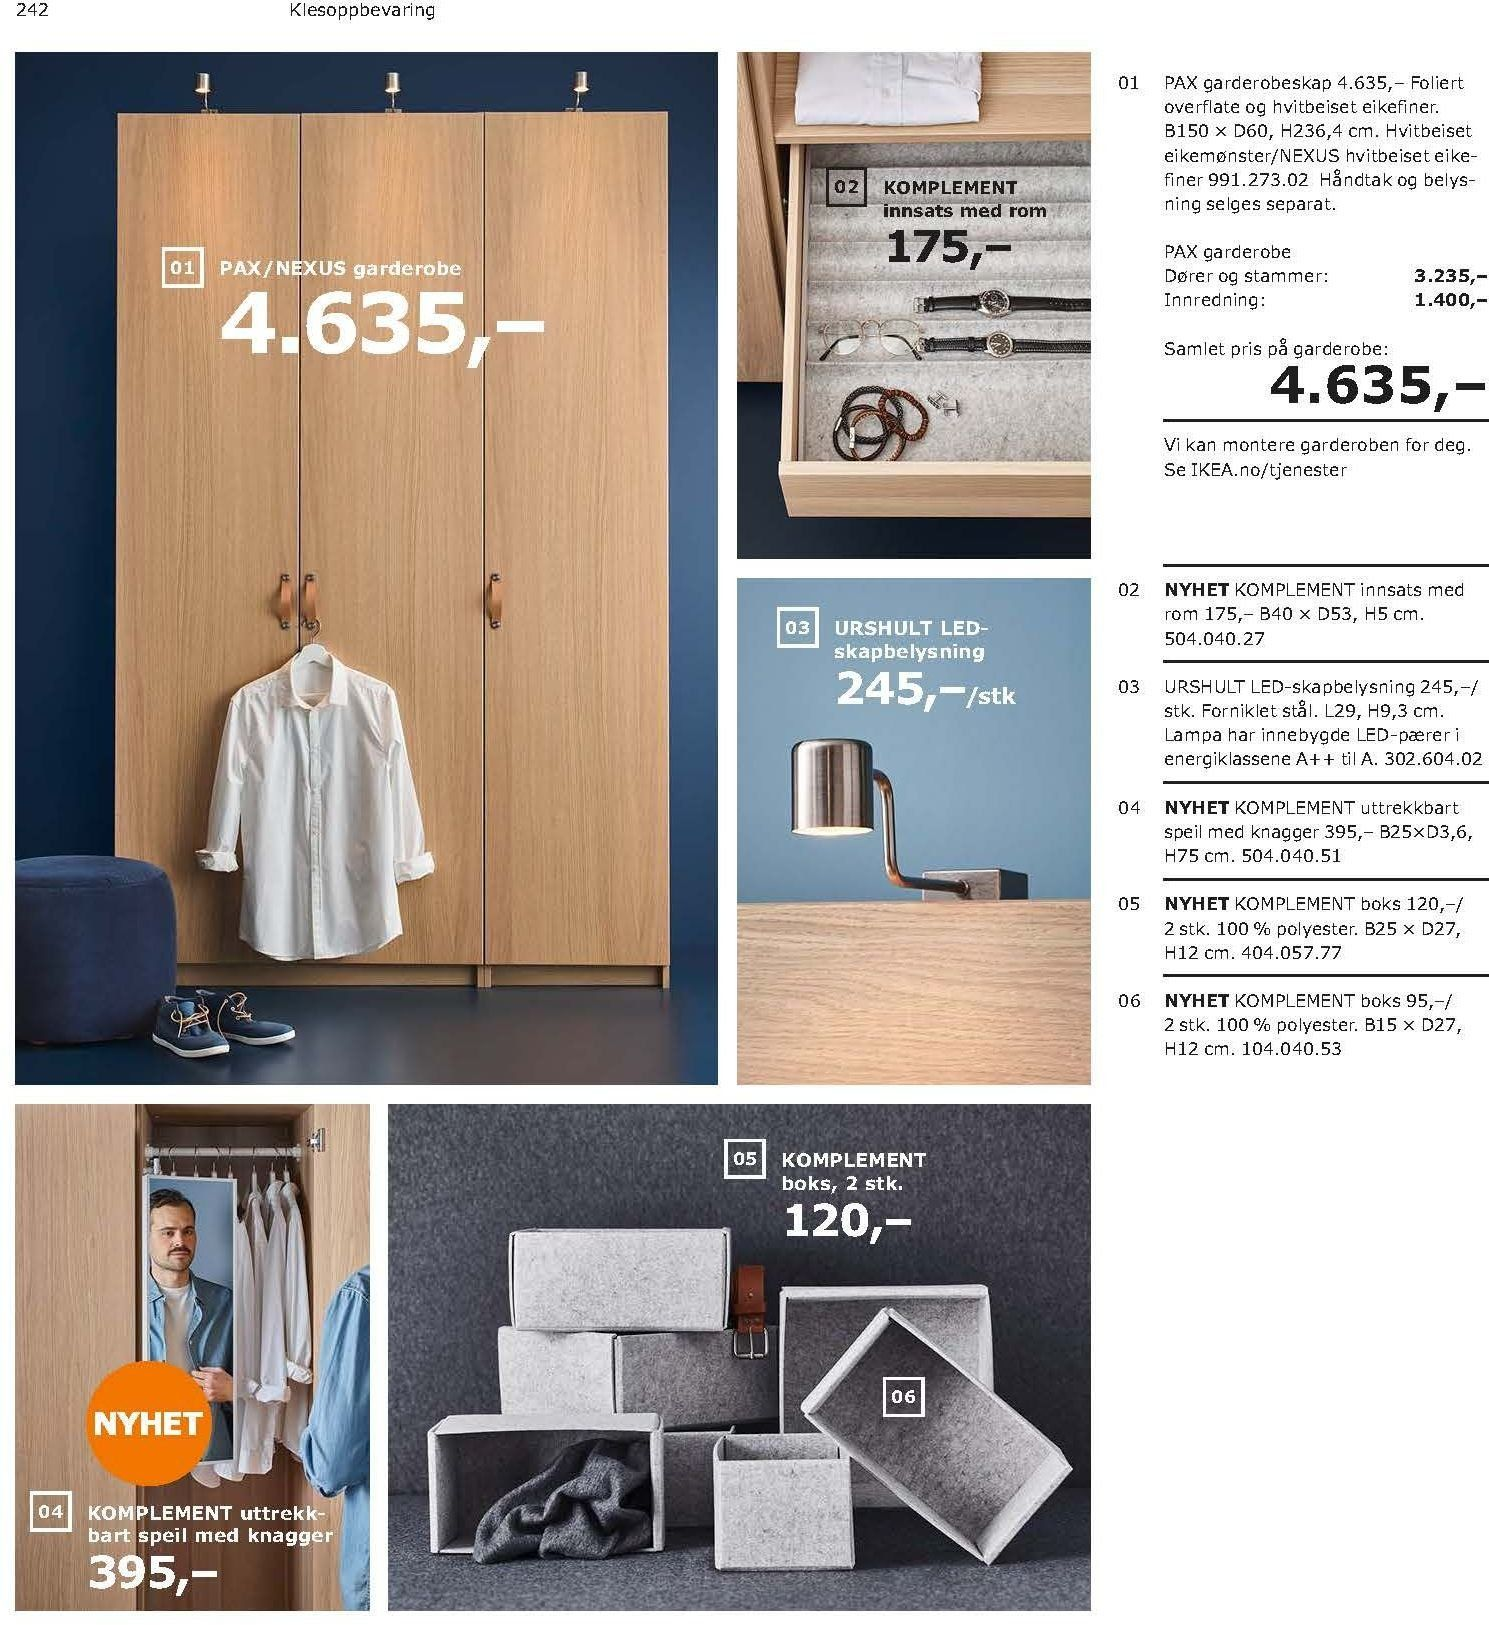 Kundeavis IKEA - 21.08.2018 - 11.08.2019. Side 242.